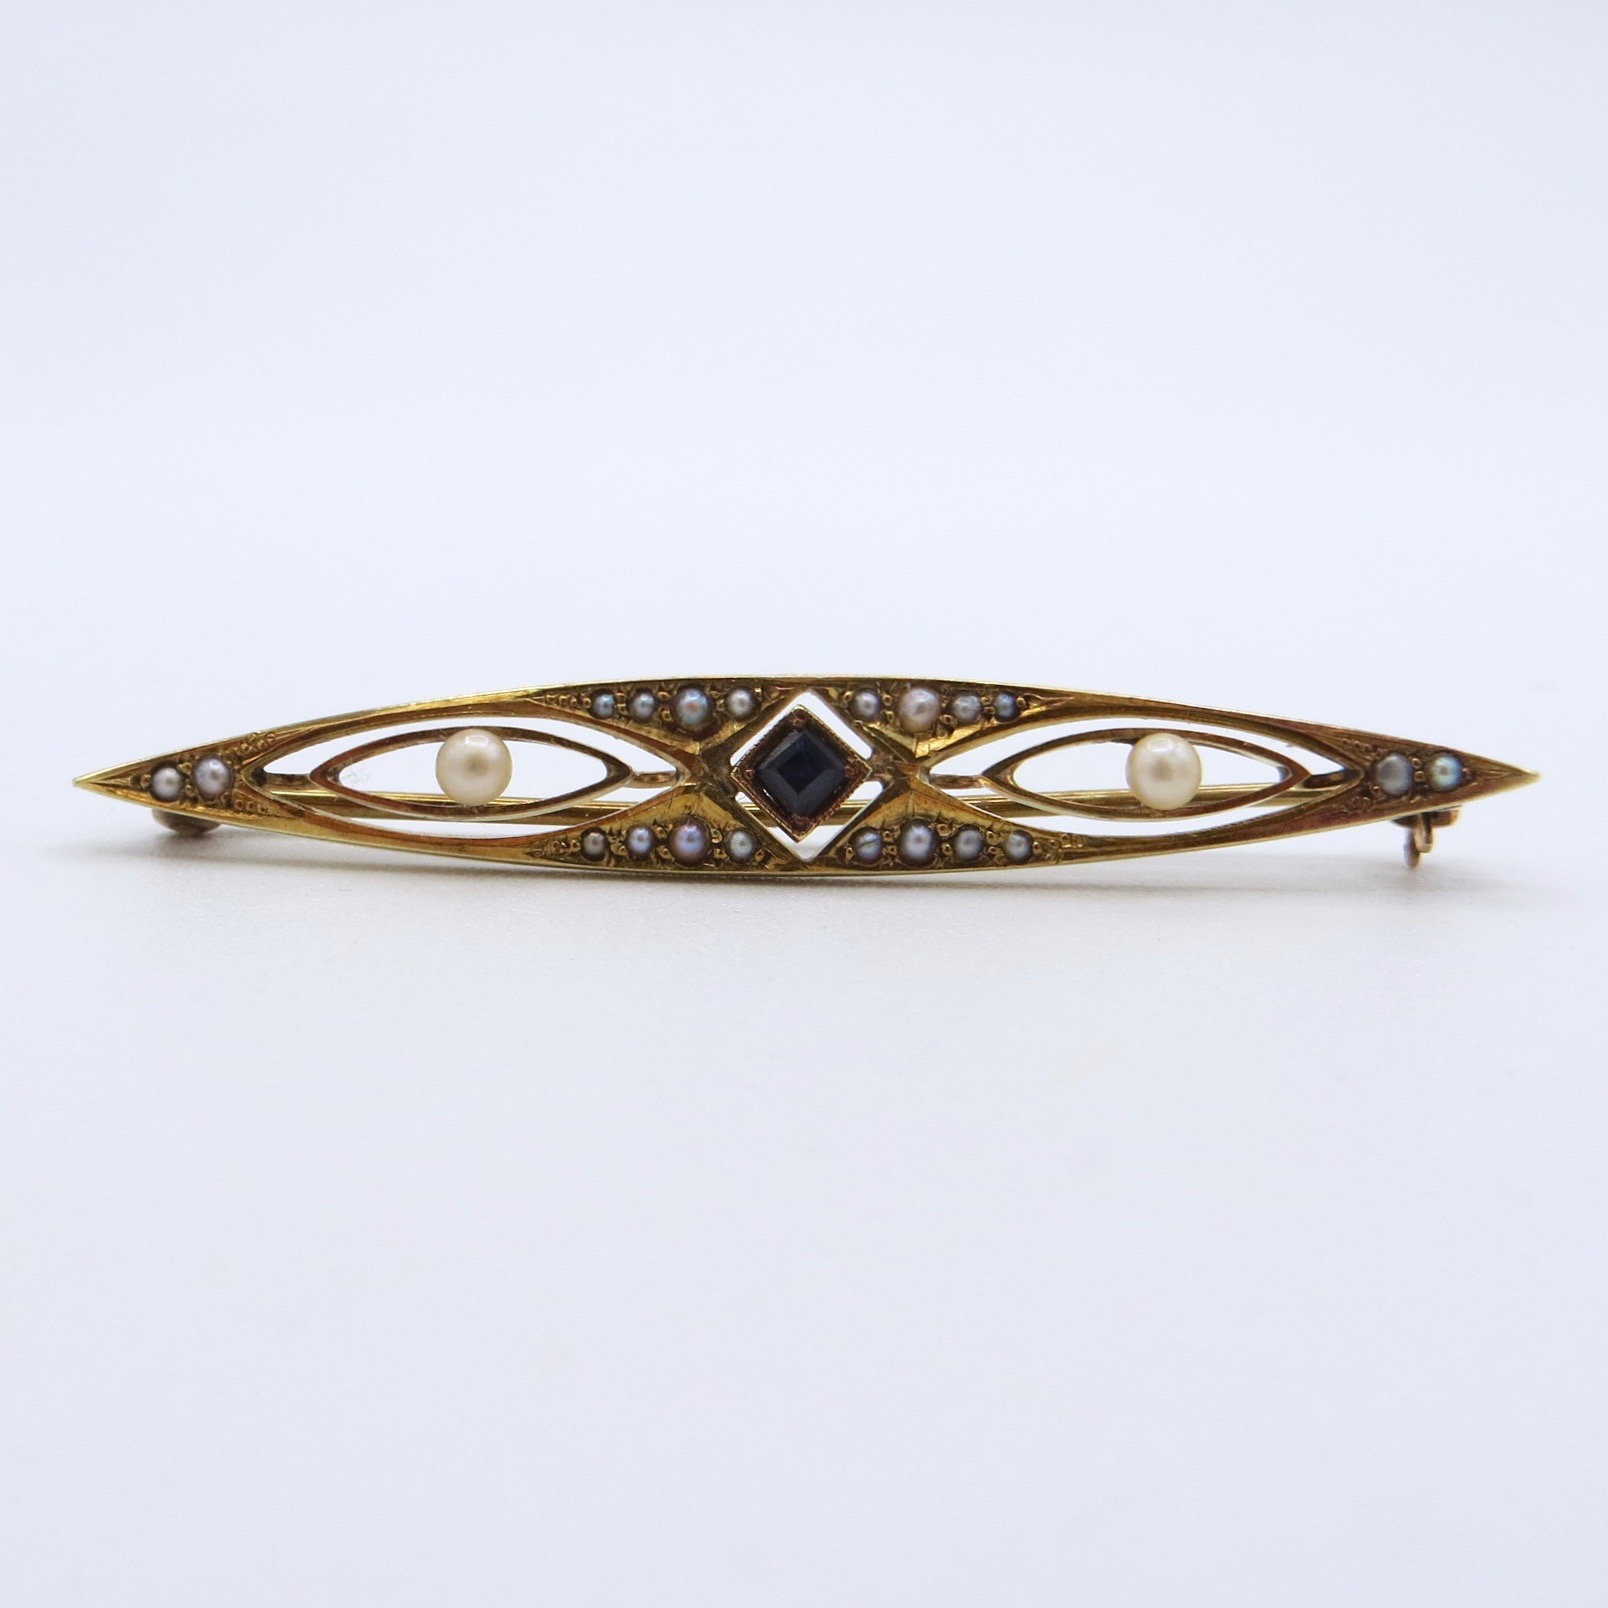 14kt Gold-Filled Brooch